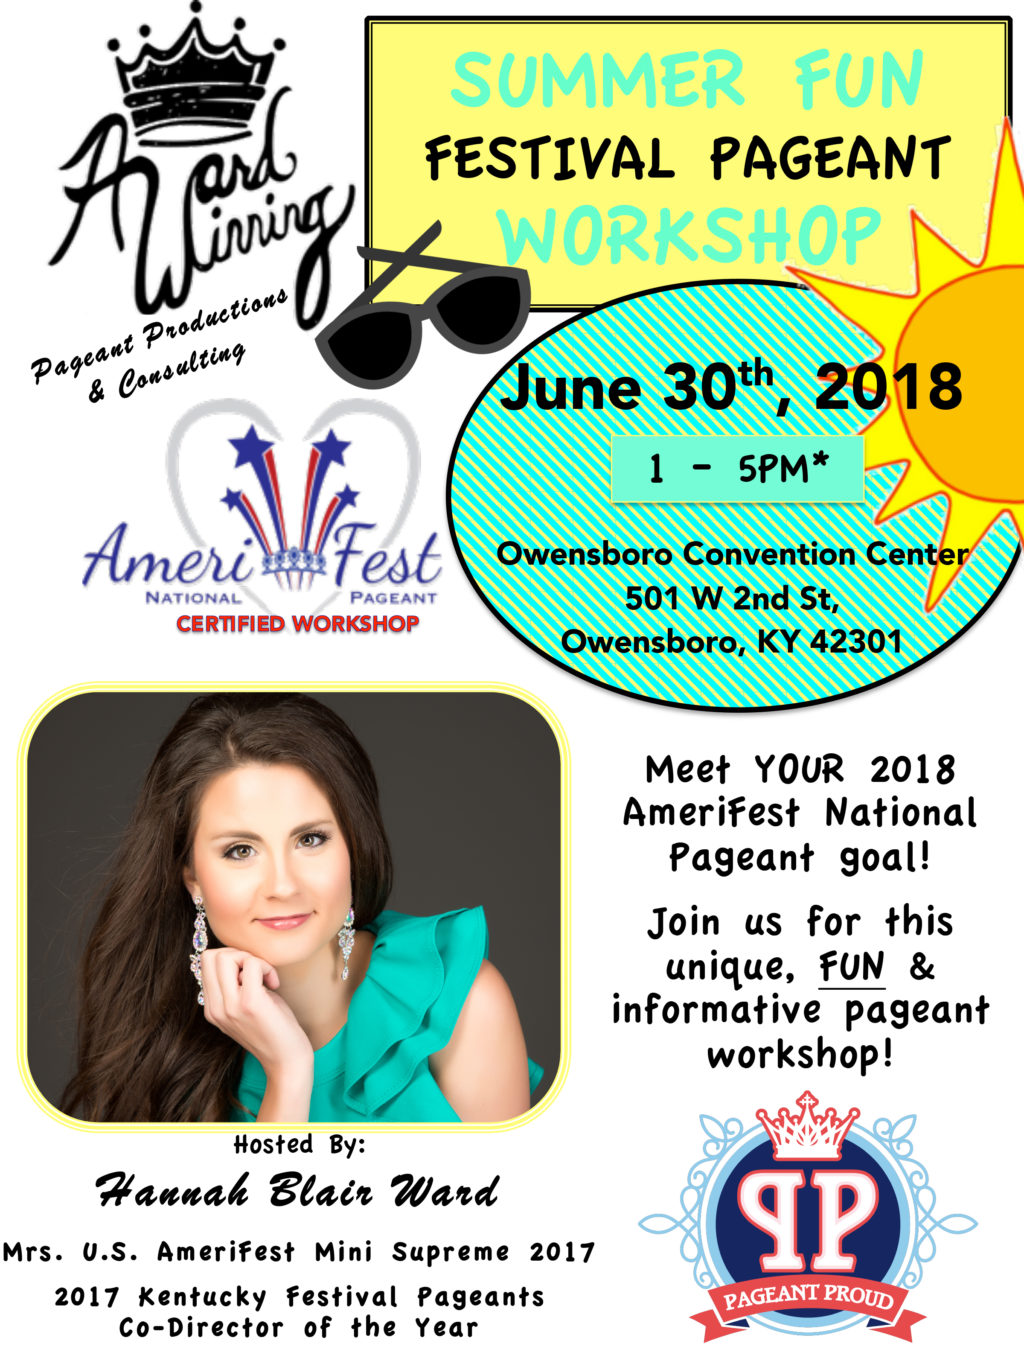 Summer FUN Festival Pageant Workshop